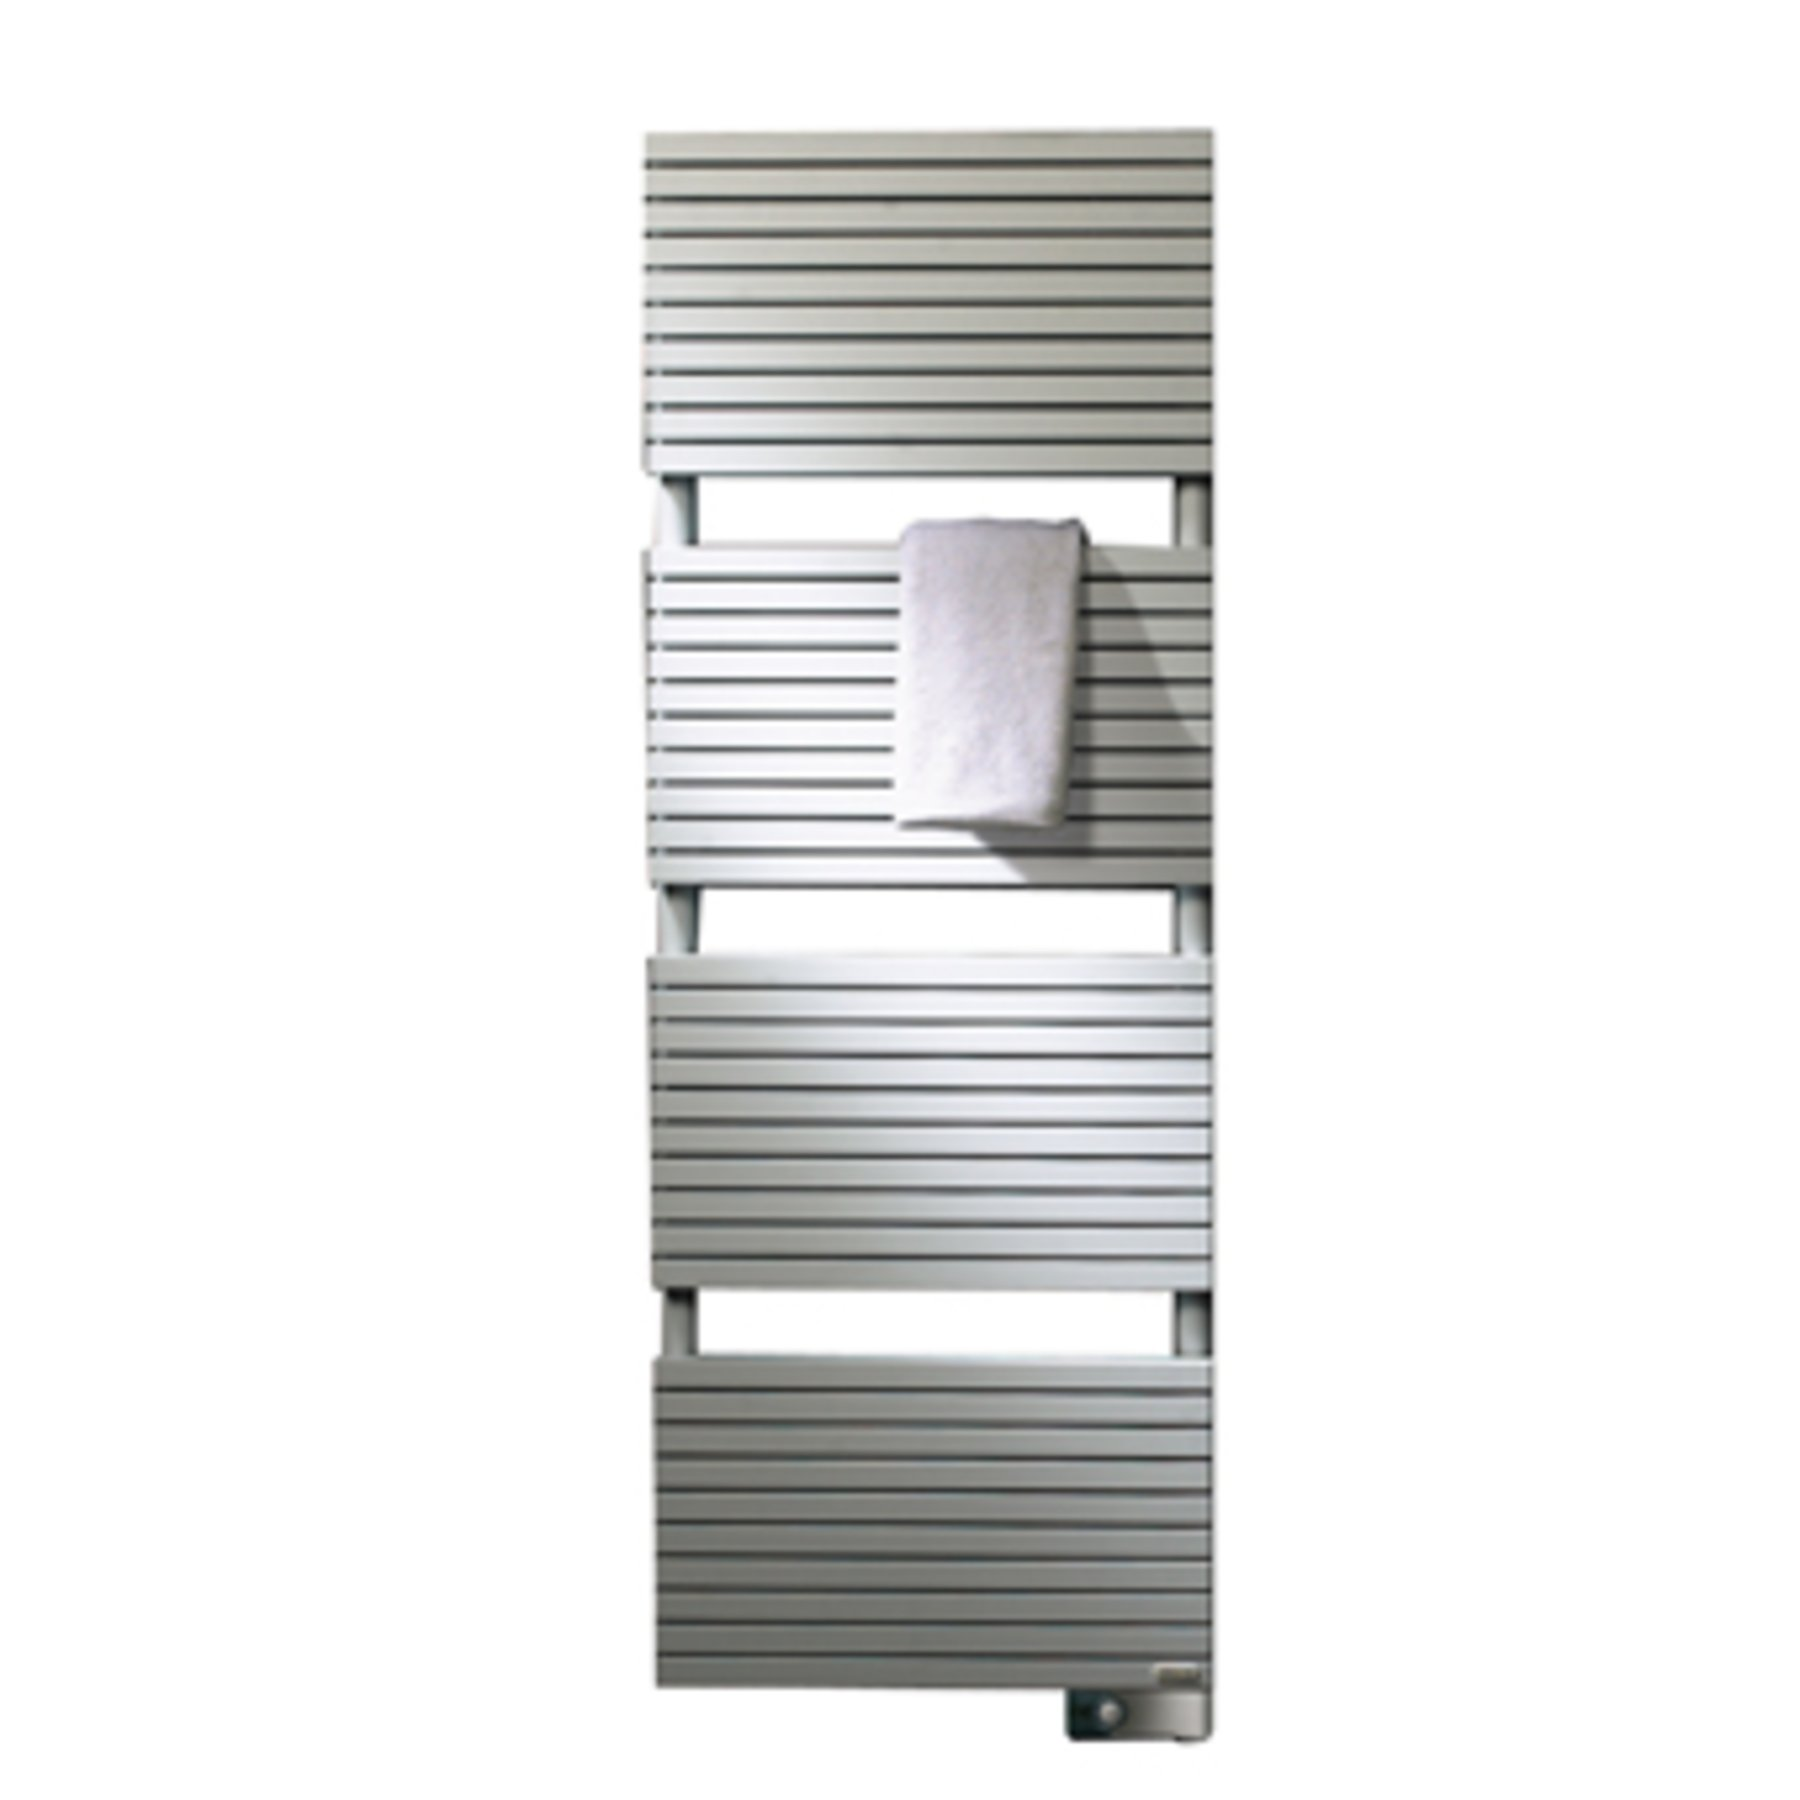 Vasco Carre CB designradiator 500x1735mm 925W grijswit